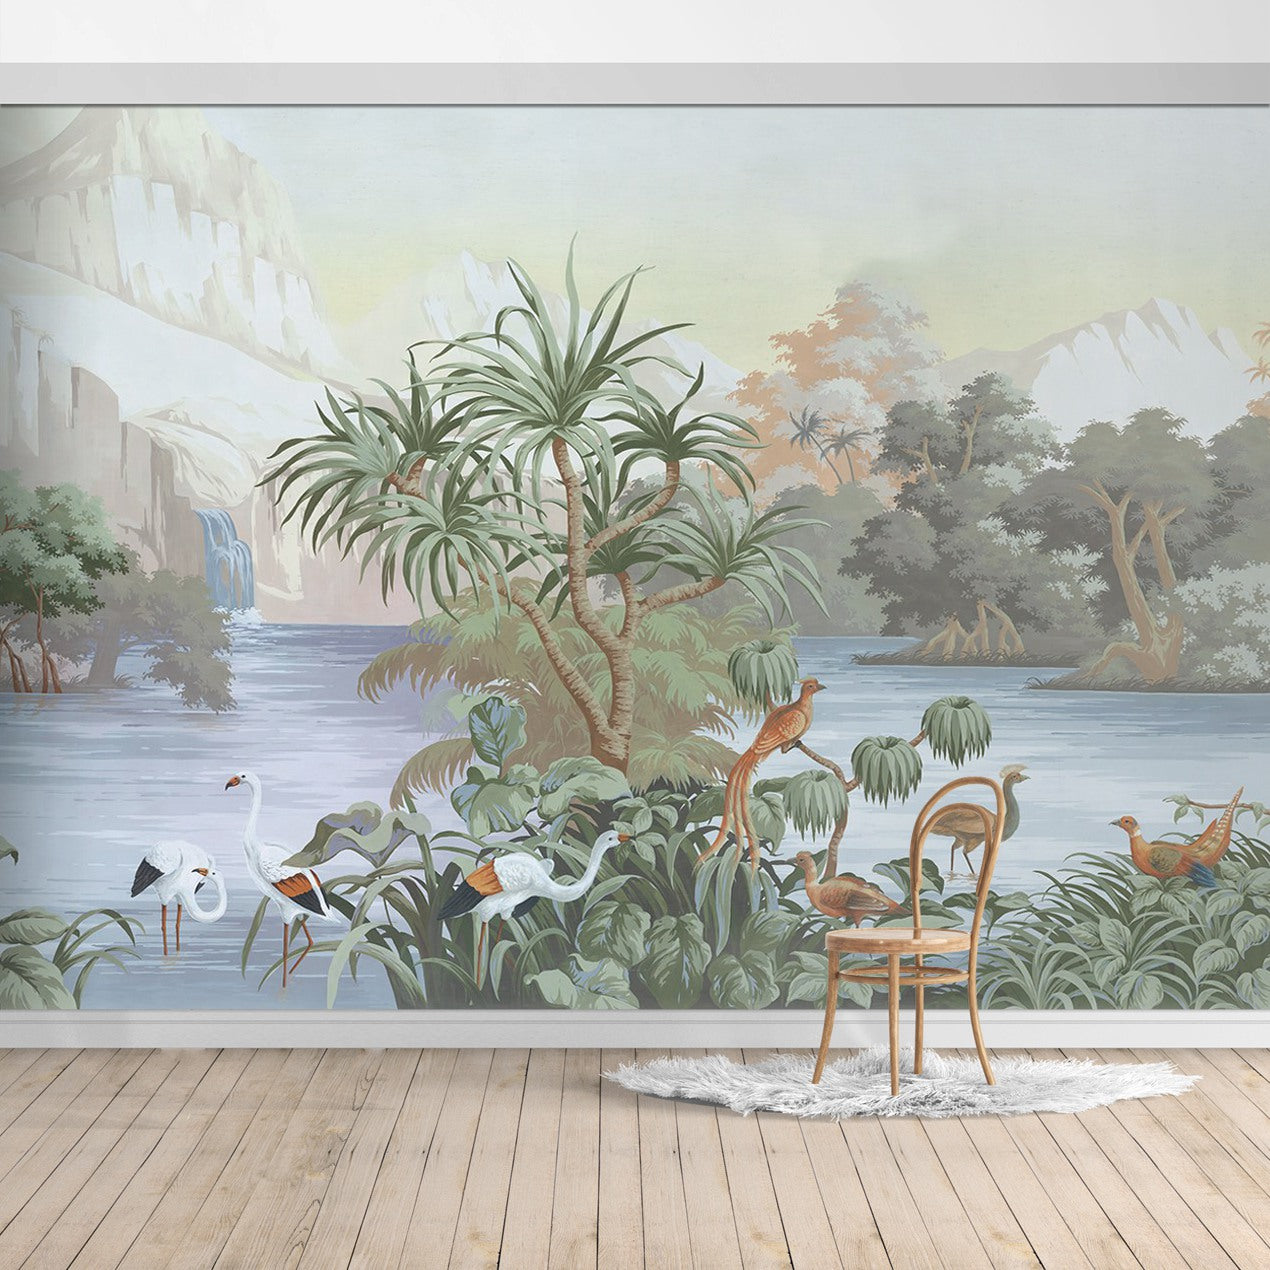 BOB017X Hawaiian style Jungle design Mural for bedroom or dinning room by SJK